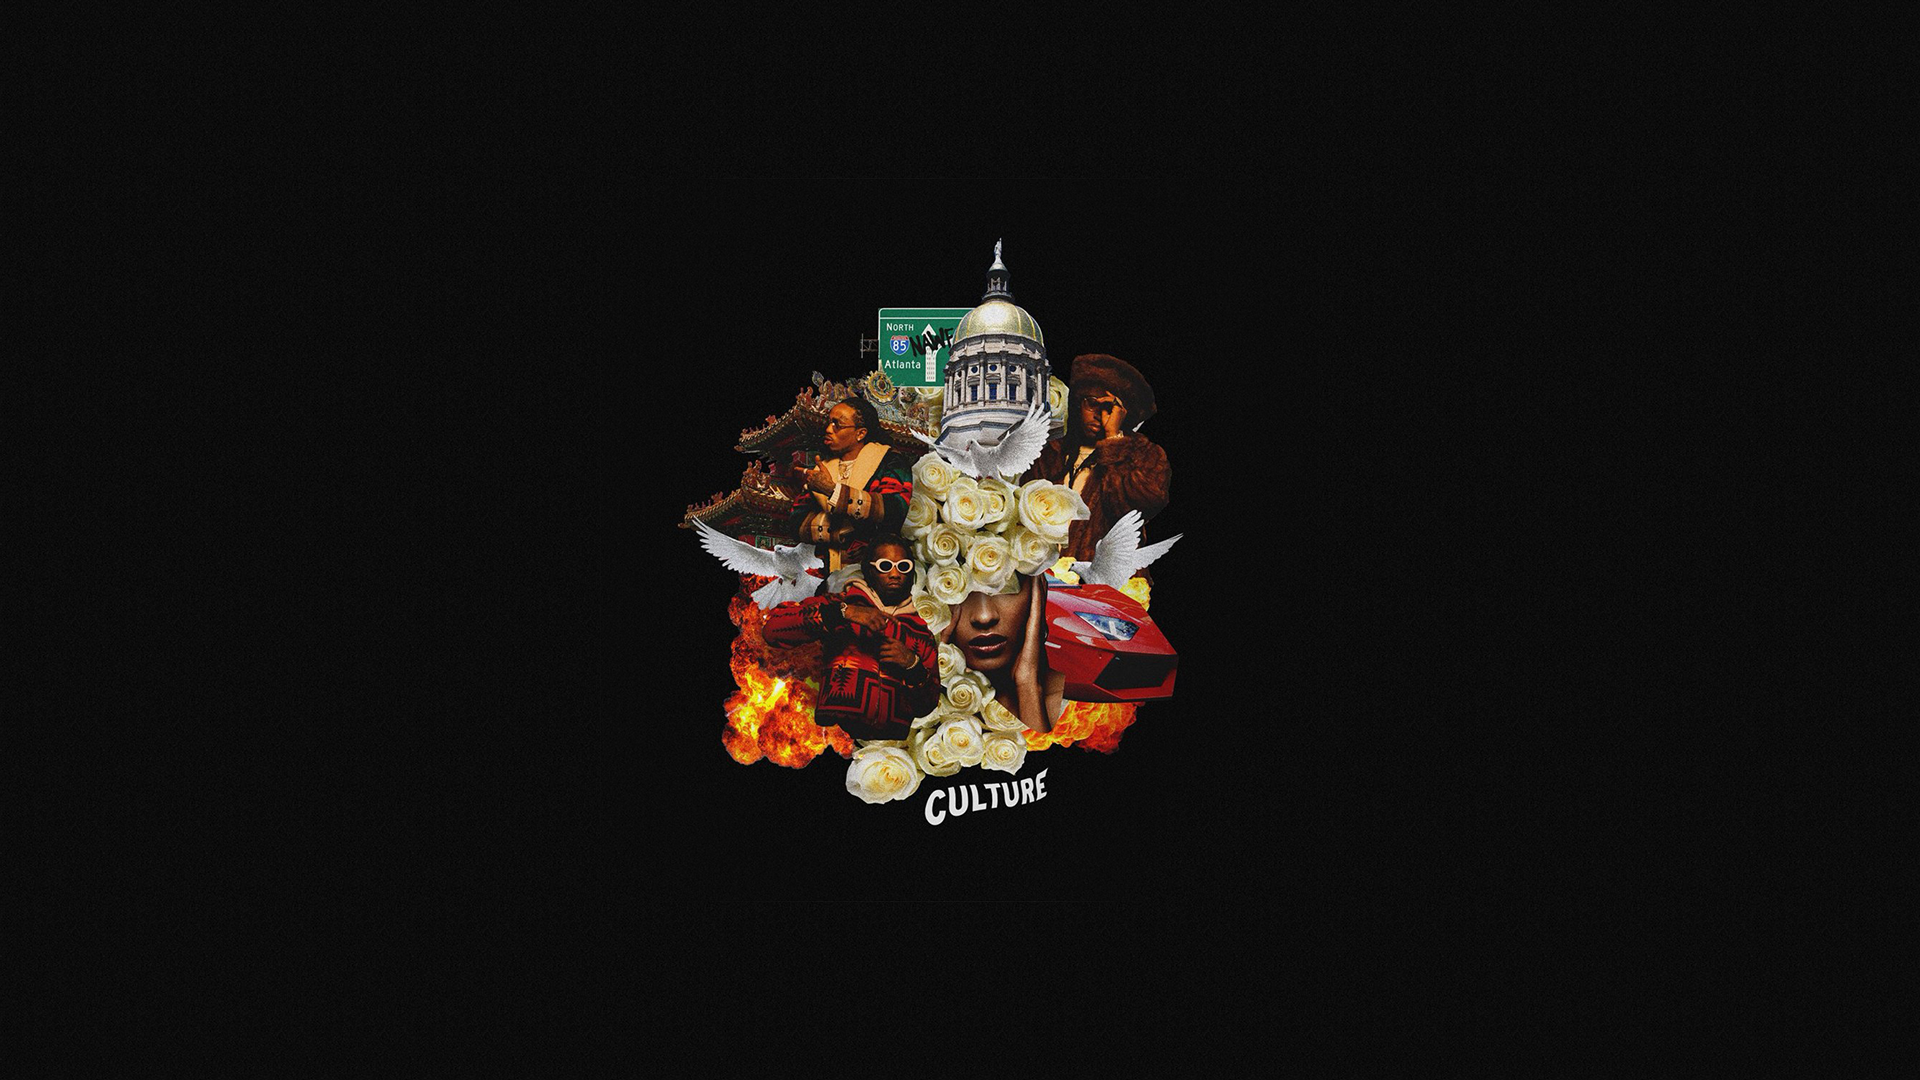 Migos Culture Wallpaper 1920x1080 Need Iphone 6s Plus Wallpaper Background For Iphone6splus Follow Iphone 6s Plus 3wallpapers Background Arte Fondos